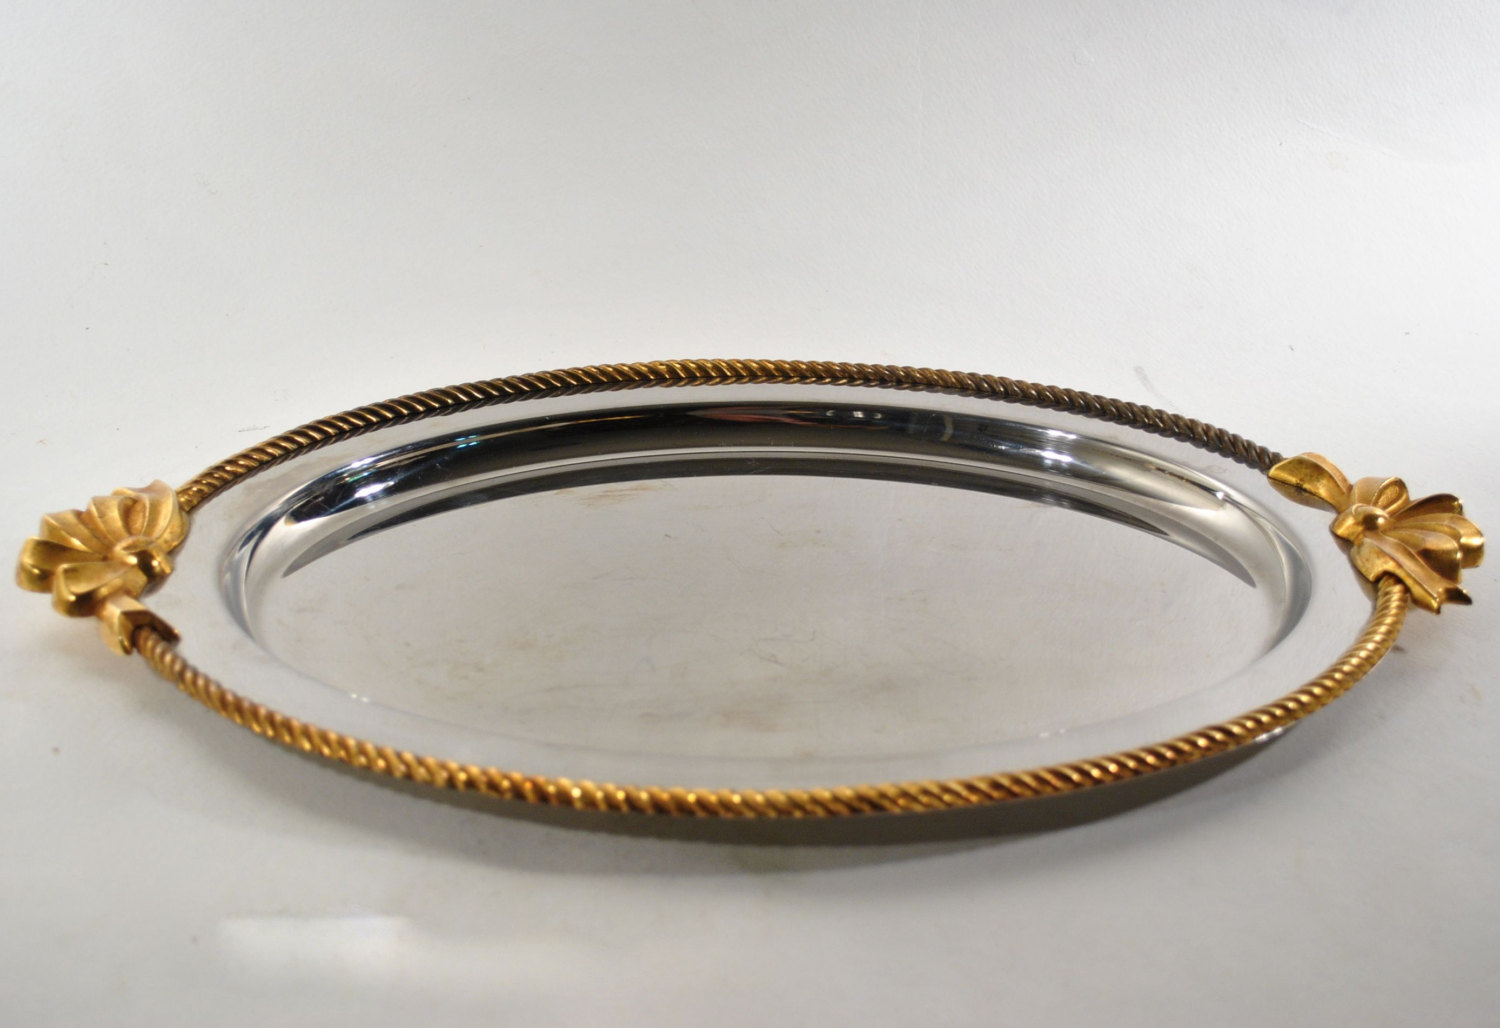 Oneida Stainless Steel Serving Tray With Gold Ribbons